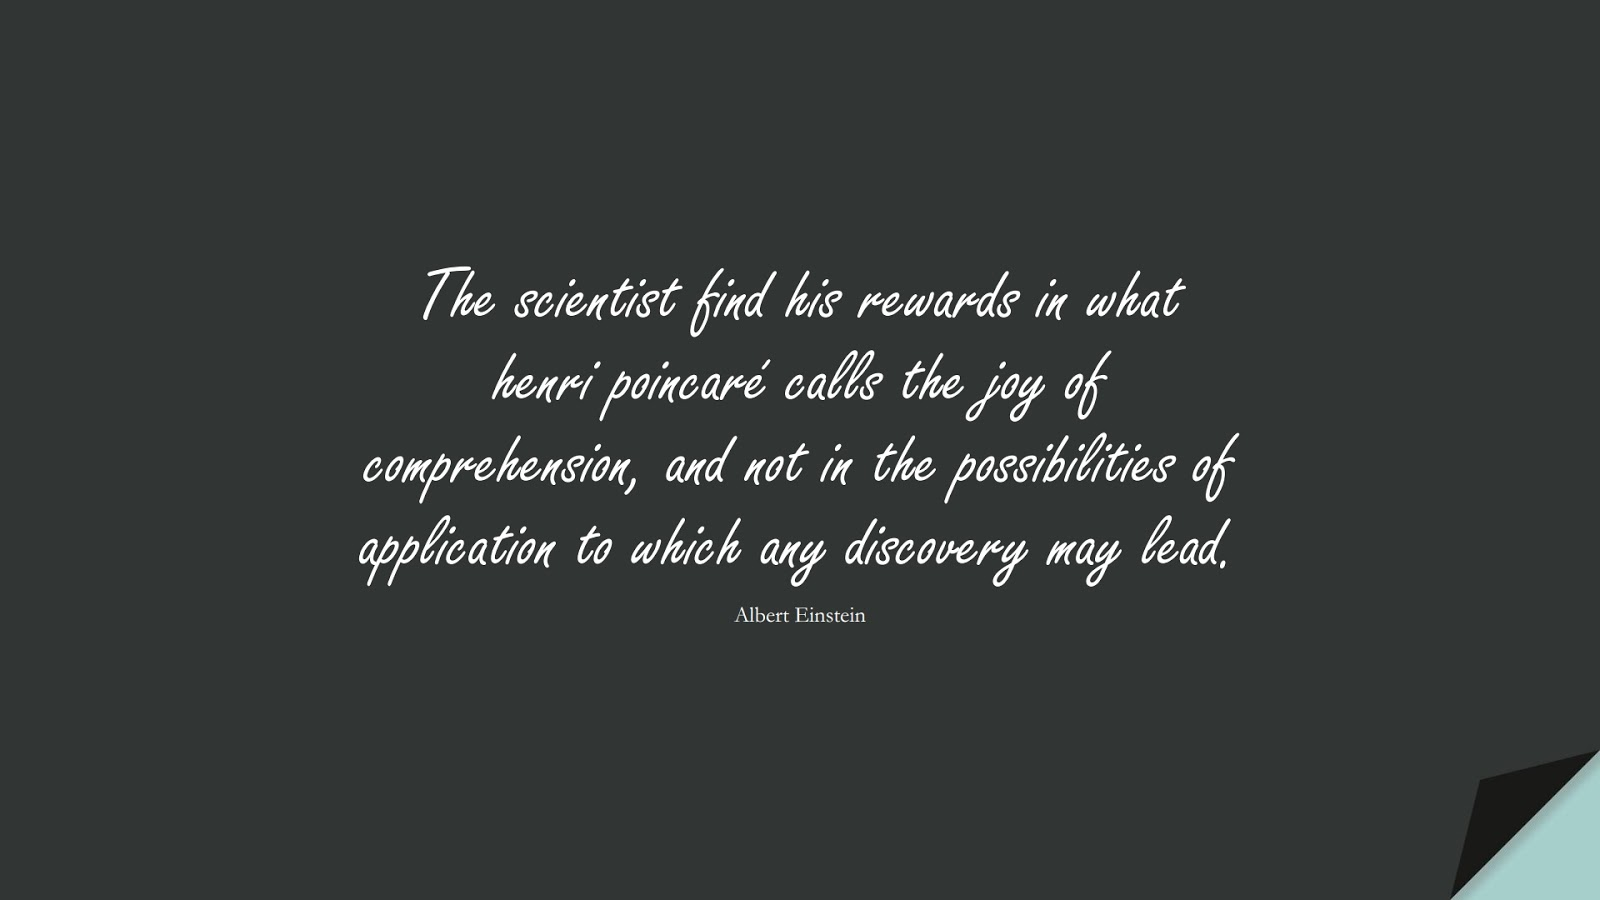 The scientist find his rewards in what henri poincaré calls the joy of comprehension, and not in the possibilities of application to which any discovery may lead. (Albert Einstein);  #AlbertEnsteinQuotes